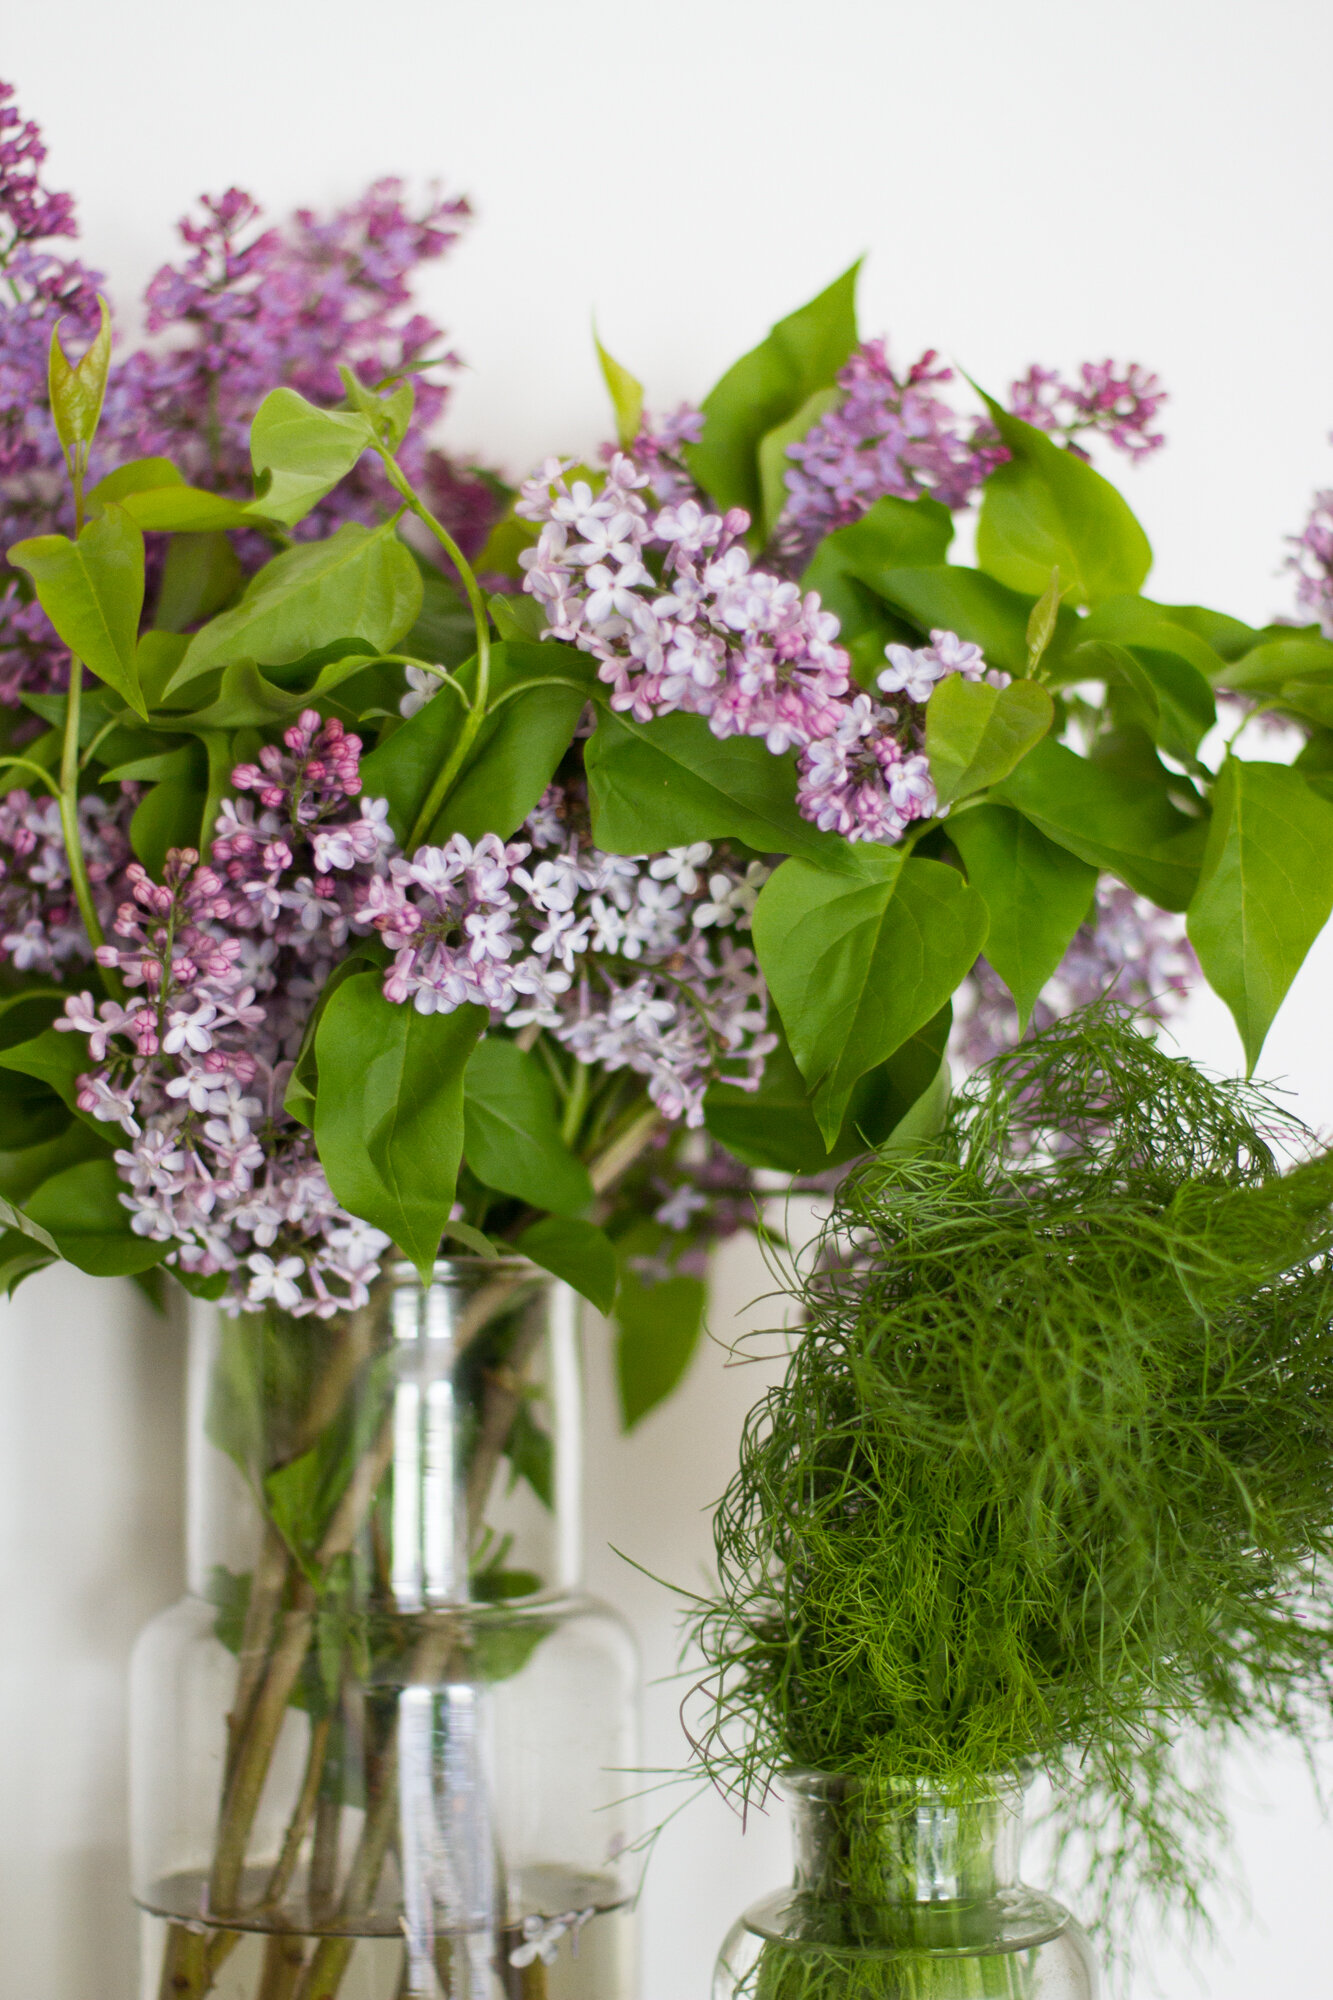 lilacs and fennel tops | reading my tea leaves